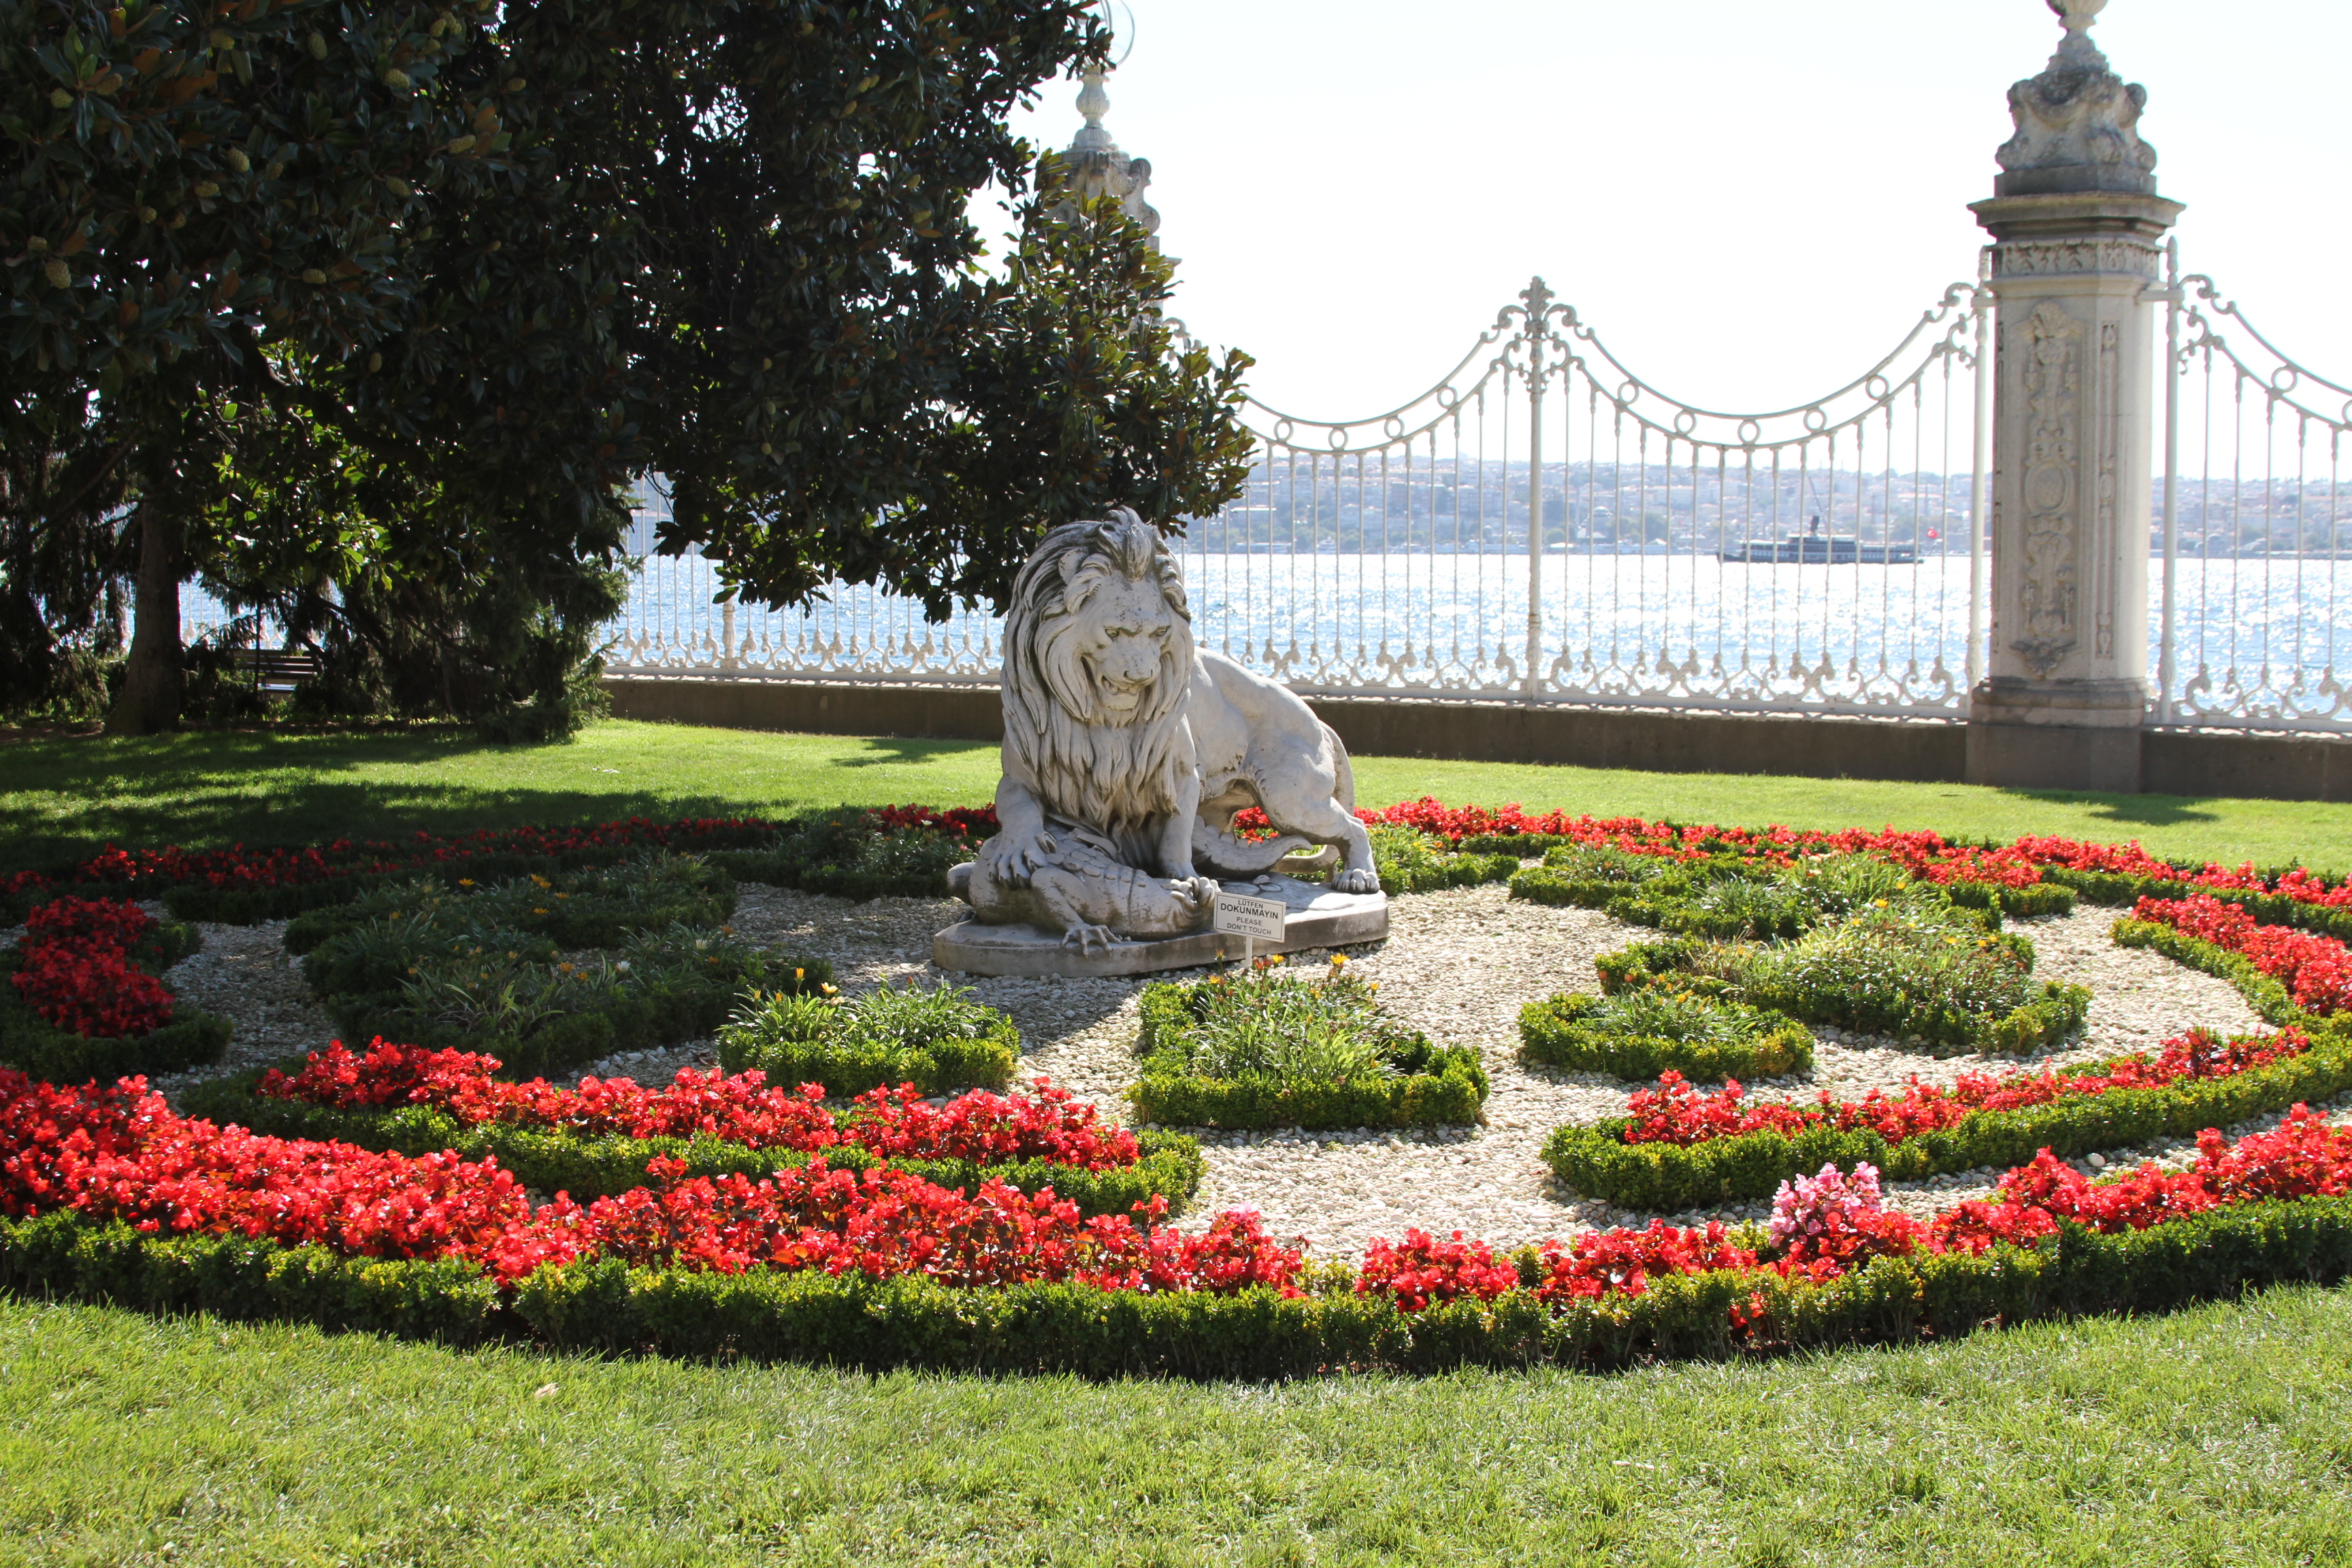 File:Statue of a lion in the garden of Dolmabahçe Palace ...